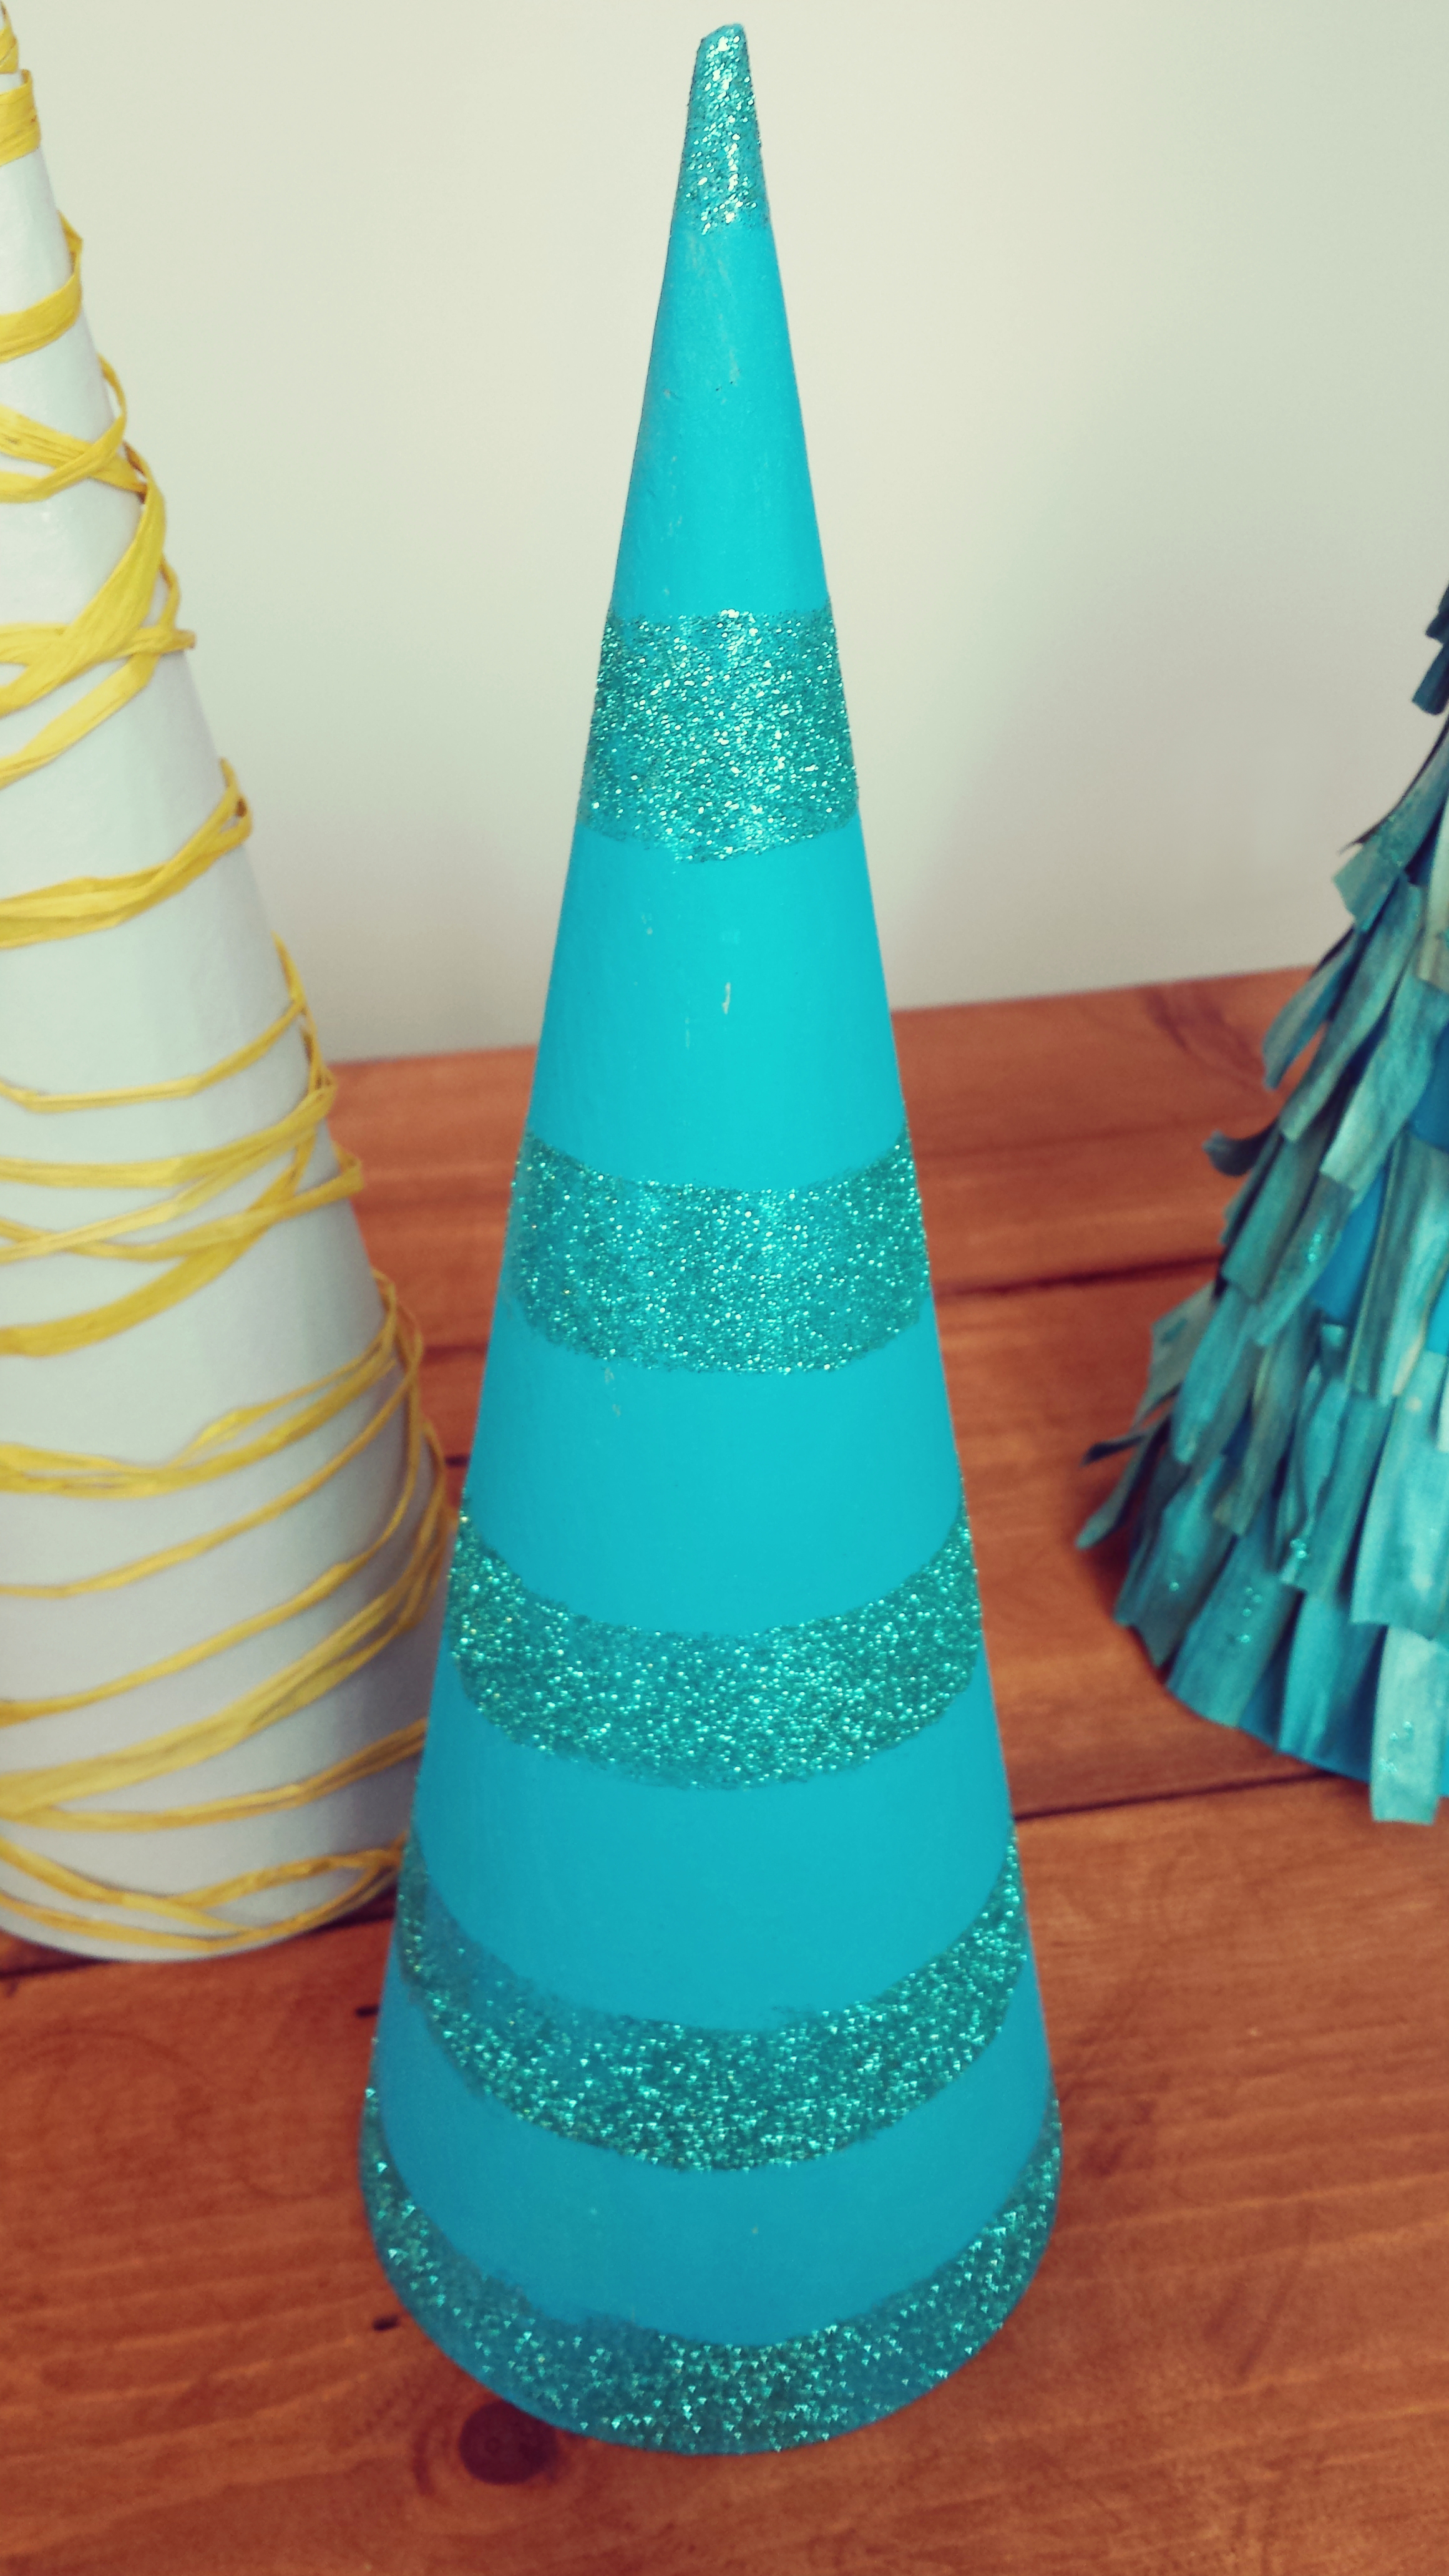 For the glitter tree I simply painted it with the acrylic paint with a cheap foam brush and let it dry. You don't need a lot of paint so it will dry fast. Then I use another foam brush and applied glued on the areas I wanted my stripes. I winged this one but if you don't feel comfortable with that simply use a ruler and pencil and mark the circumference in the areas you want it. It doesn't have to be perfect. For the Raffia Tree I took one end of a raffia string and glued it on the bottom then I began to wrap it around and put glue every now and then where needed.